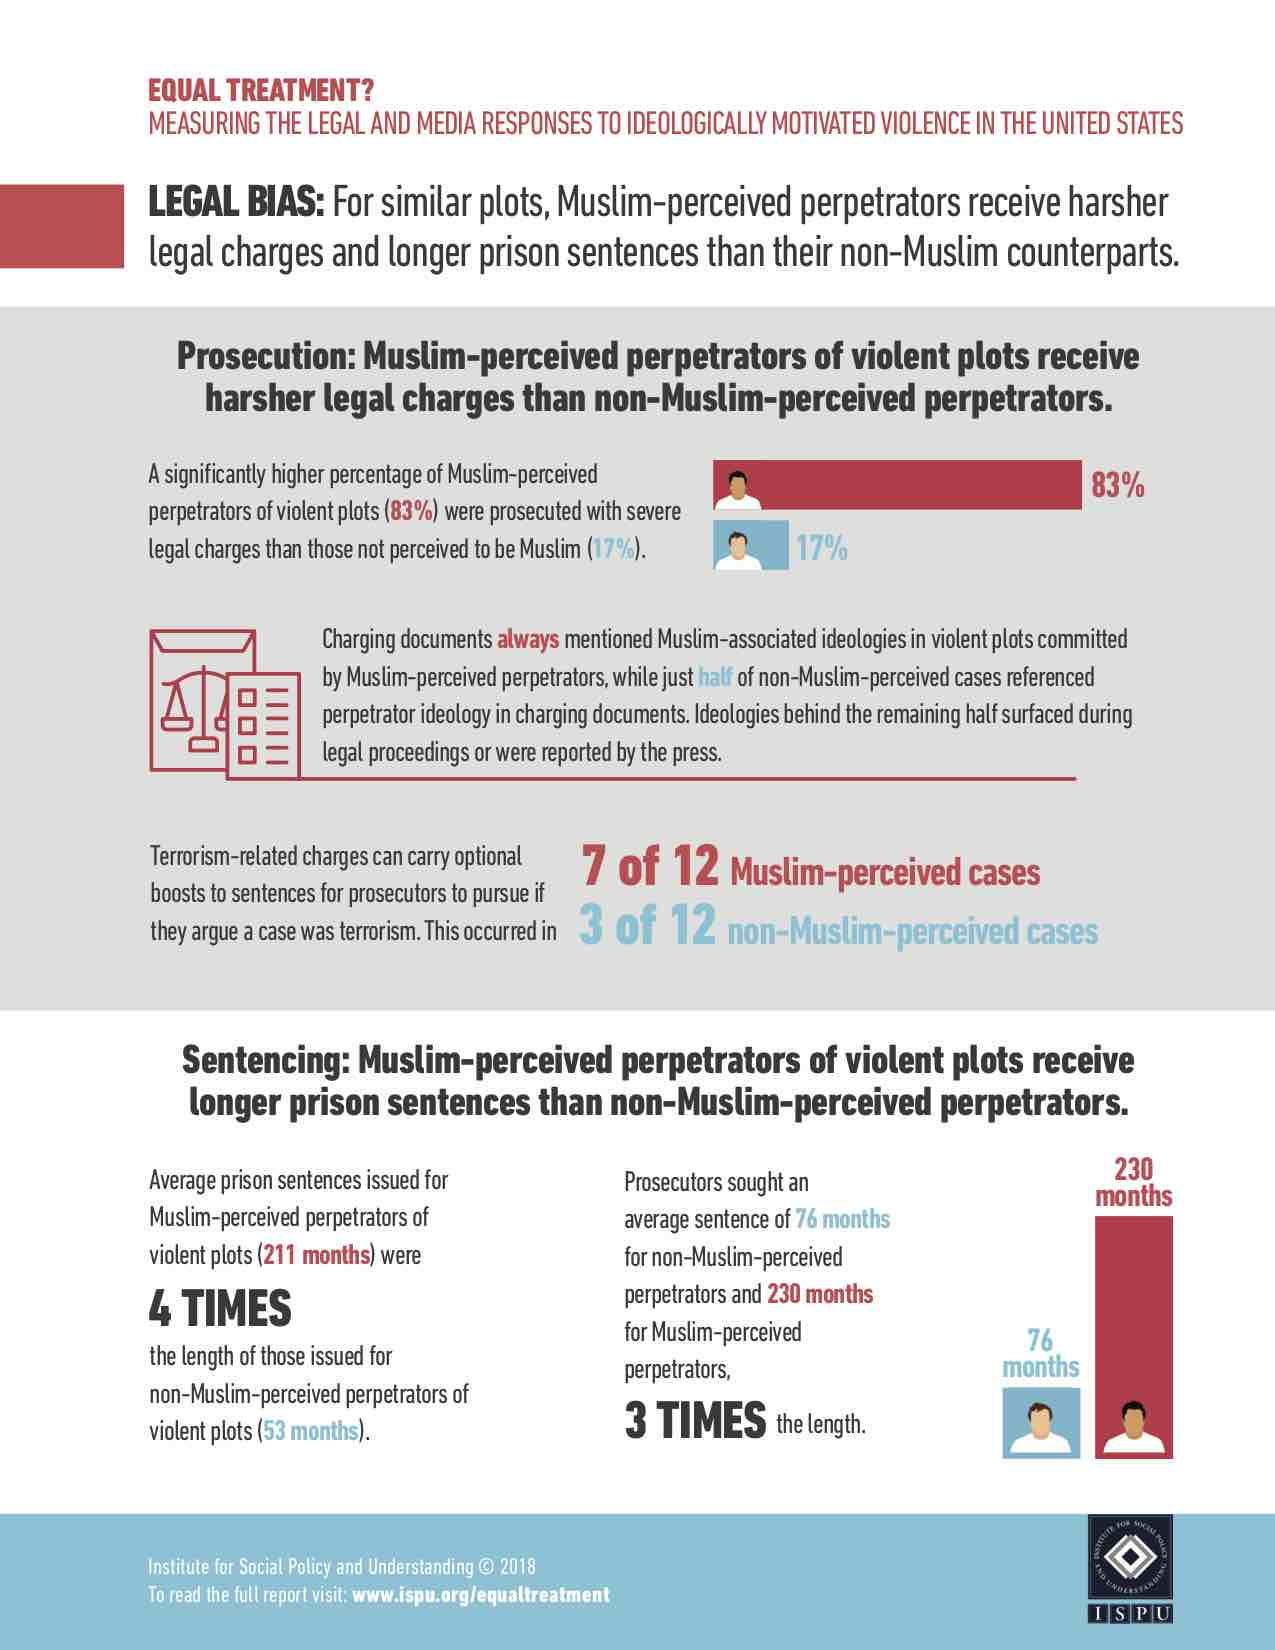 Equal Treatment Infographic 1